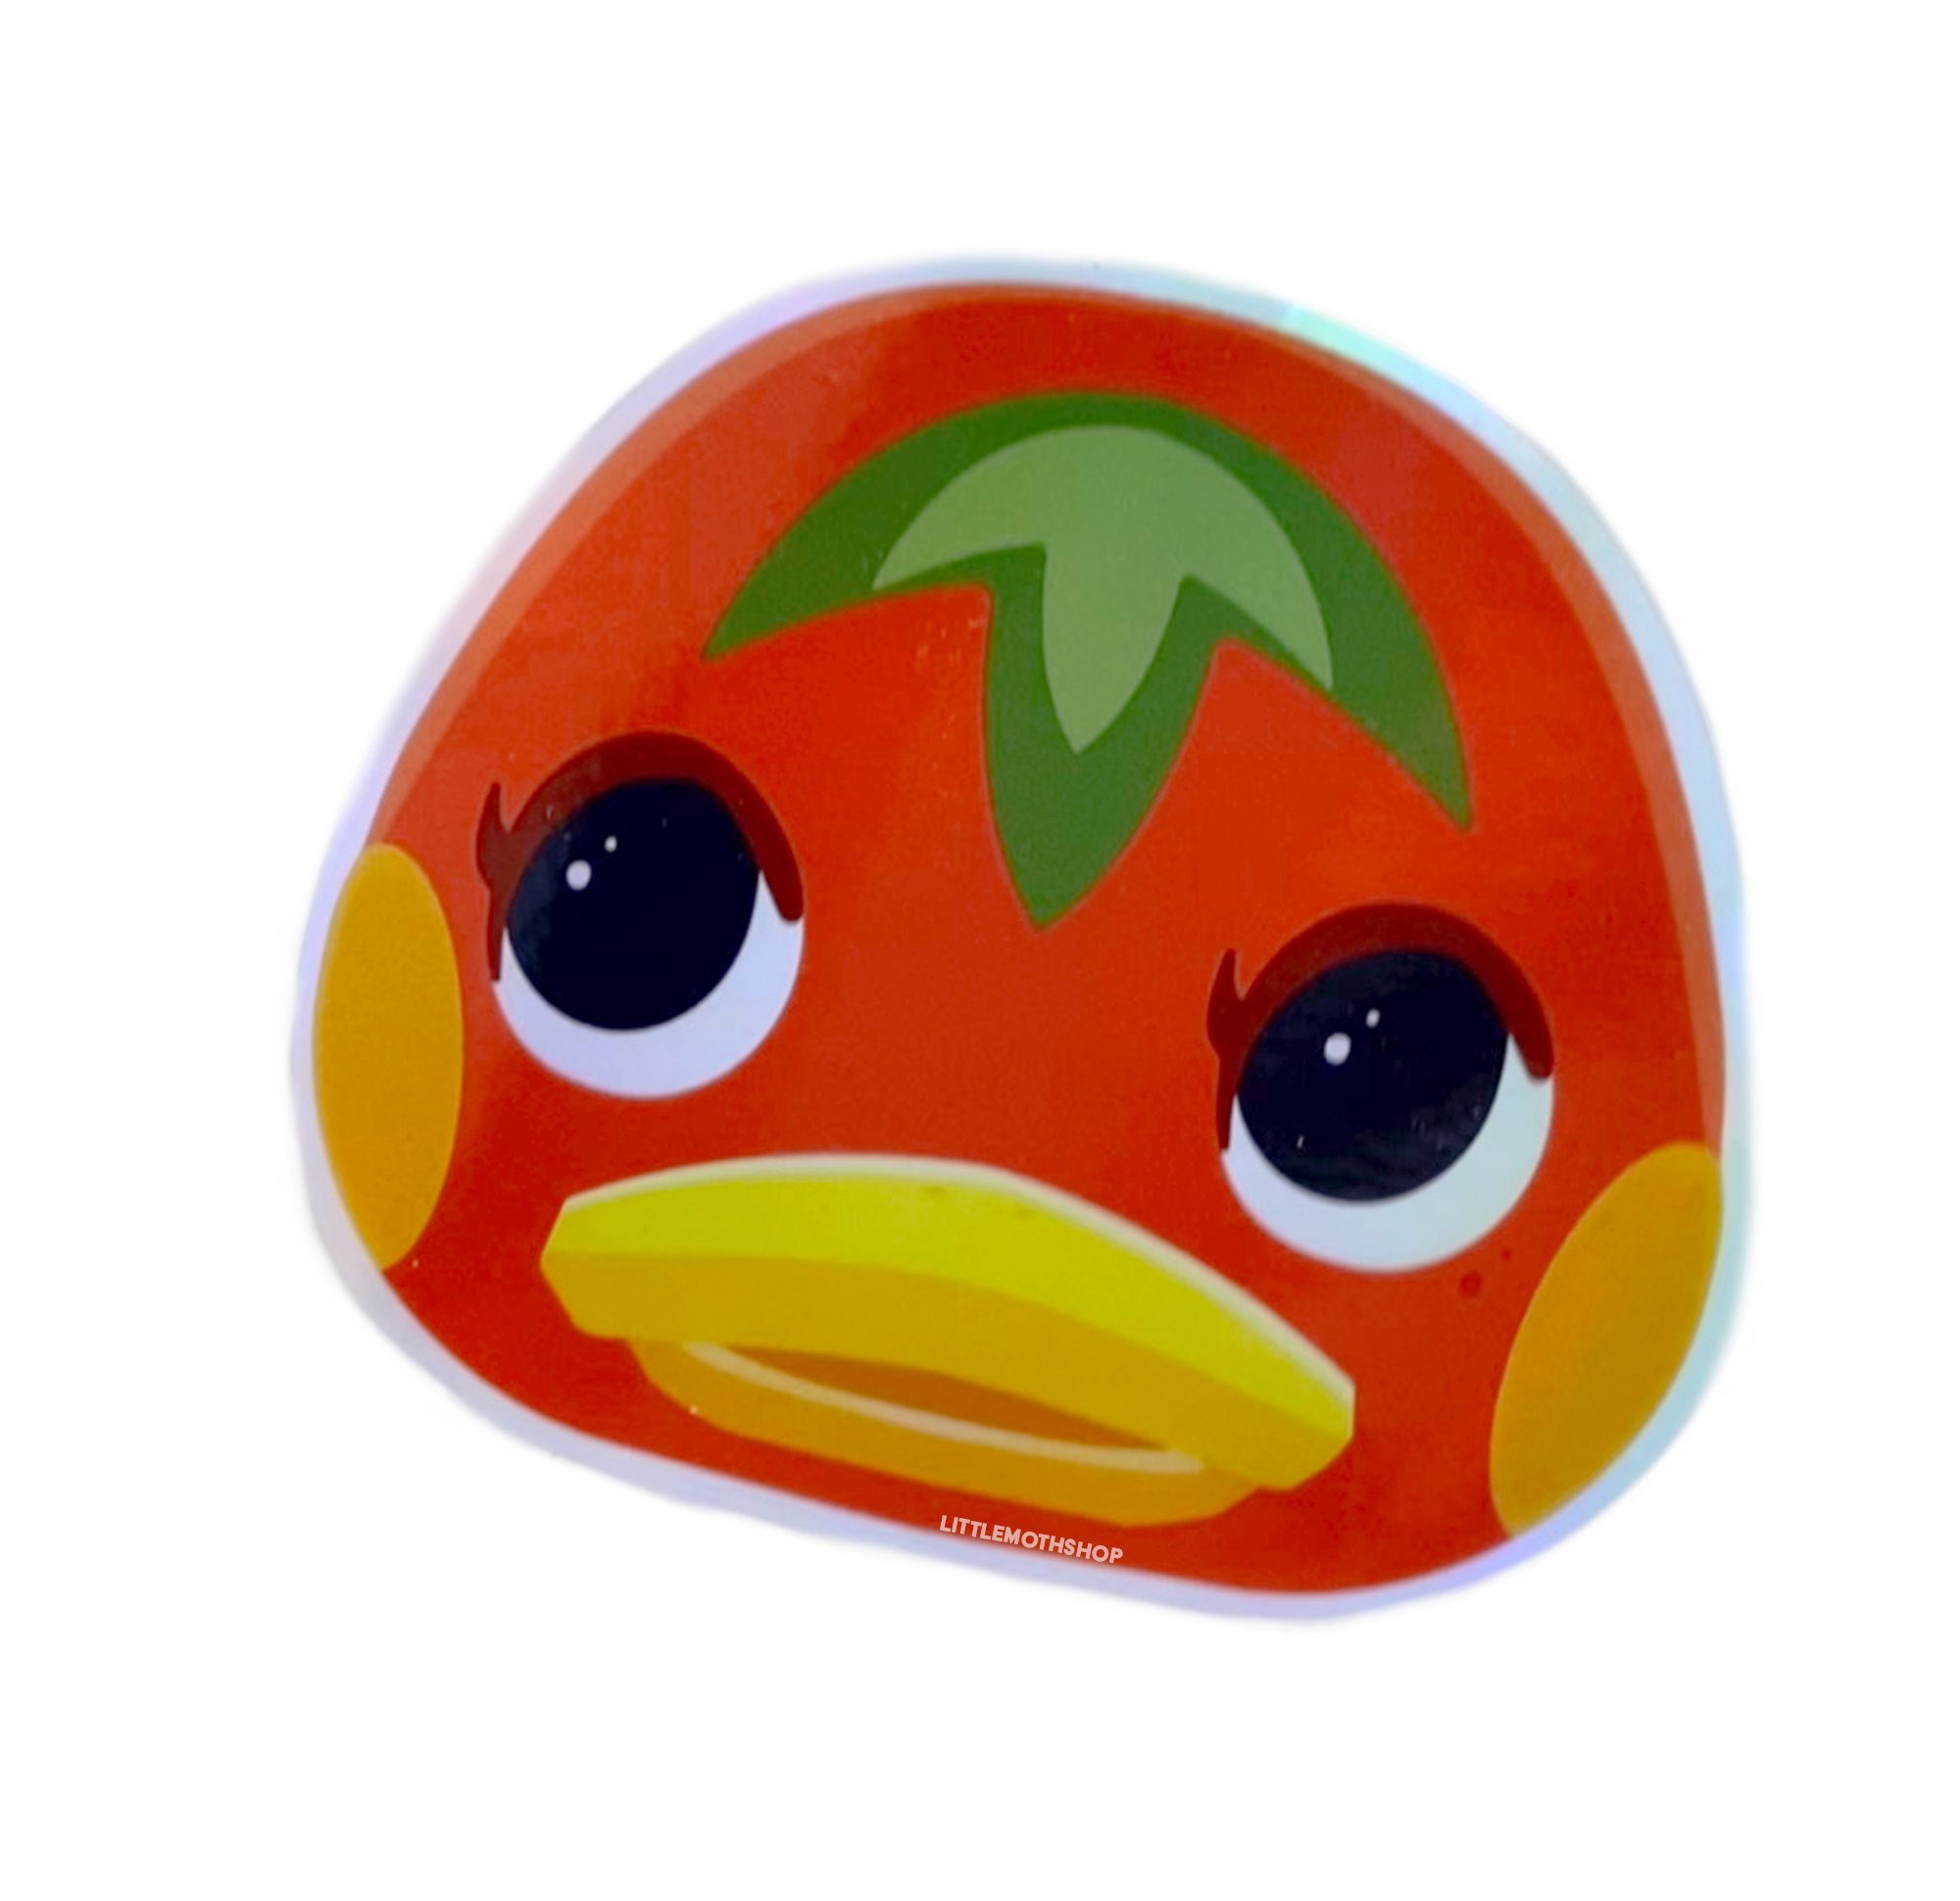 Ketchup Animal Crossing Holographic Sticker